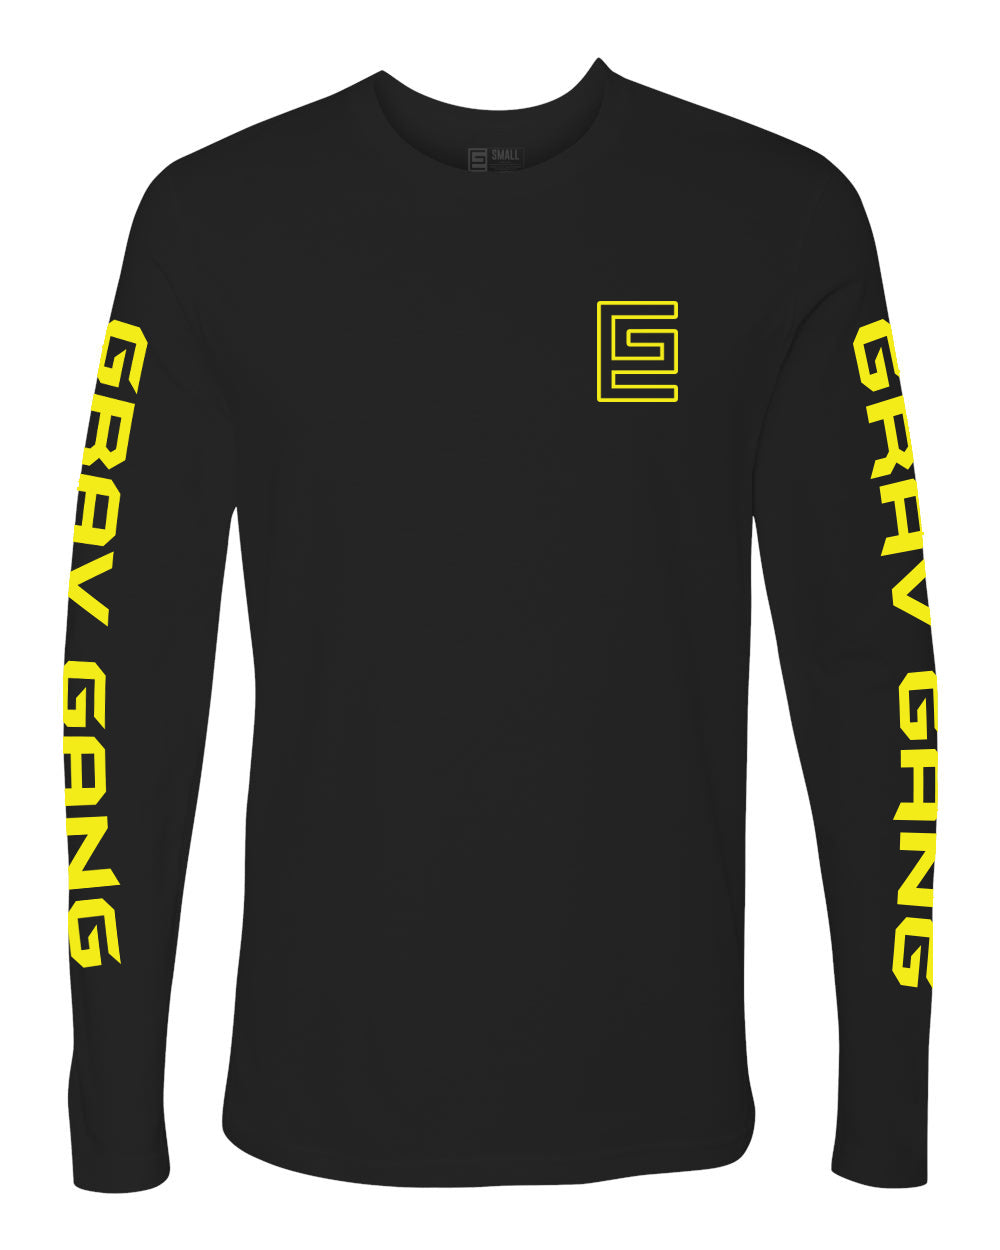 Grav Gang Long Sleeve Tee - Gravitated Equations Clothing & Apparel